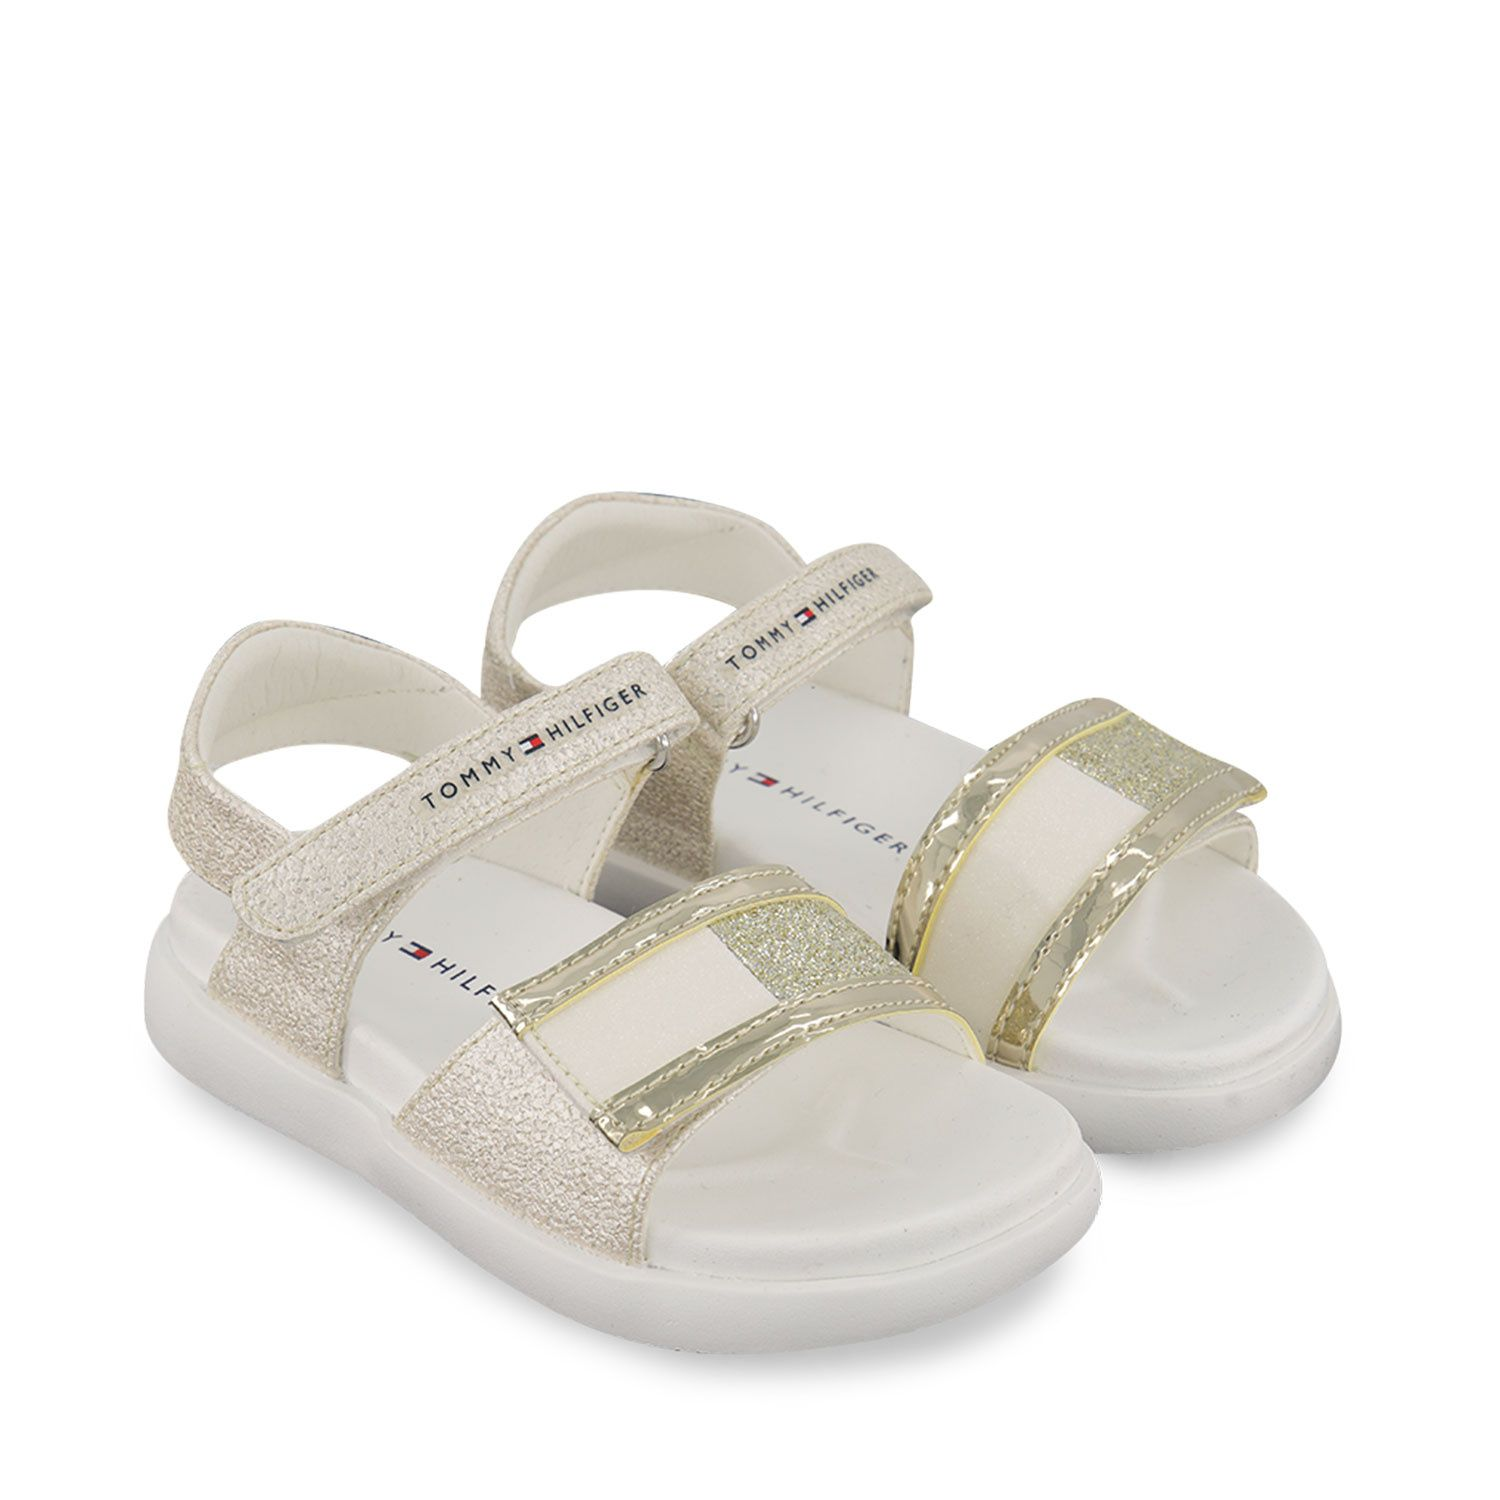 Picture of Tommy Hilfiger 31035 kids sandals gold